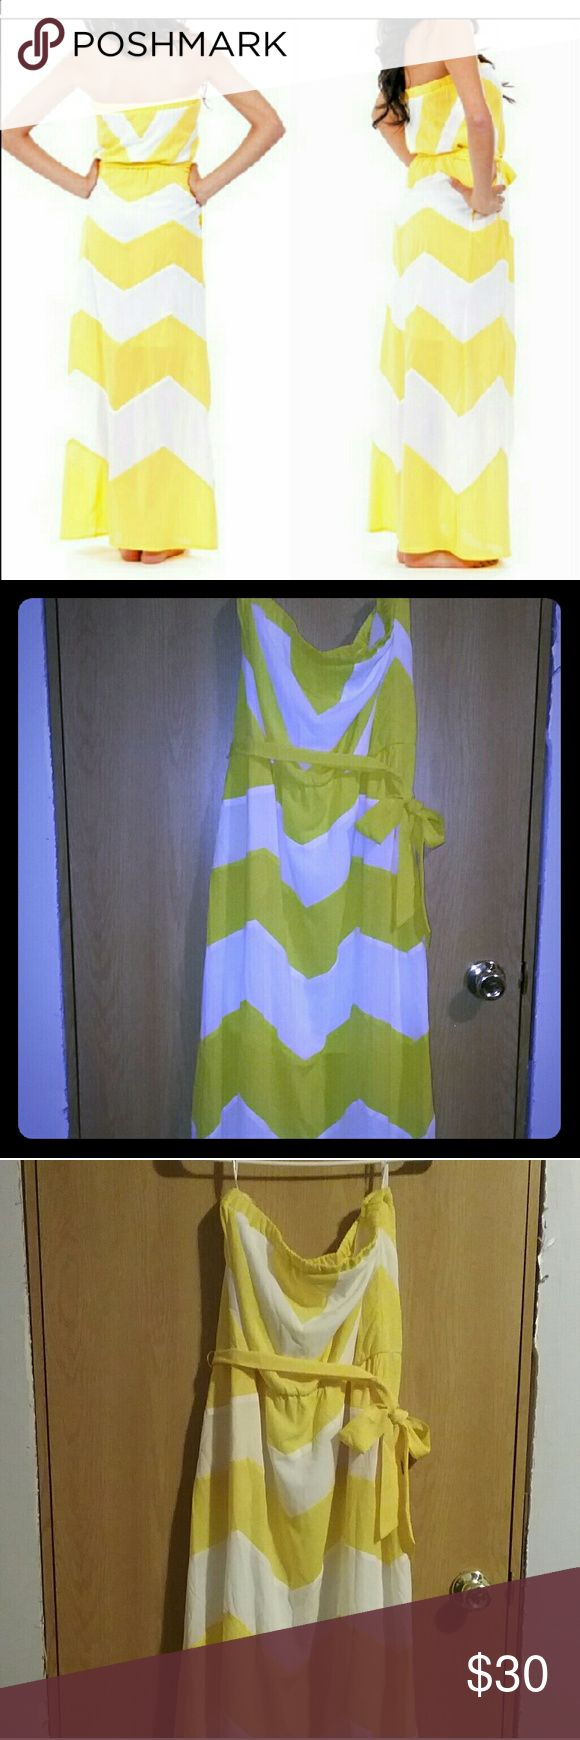 Strapless Summer Chevron Maxi Dress Brand New. Re-poshing. Im just not a dress Gal. Size Large. Bright yellow and adorable! Dresses Maxi